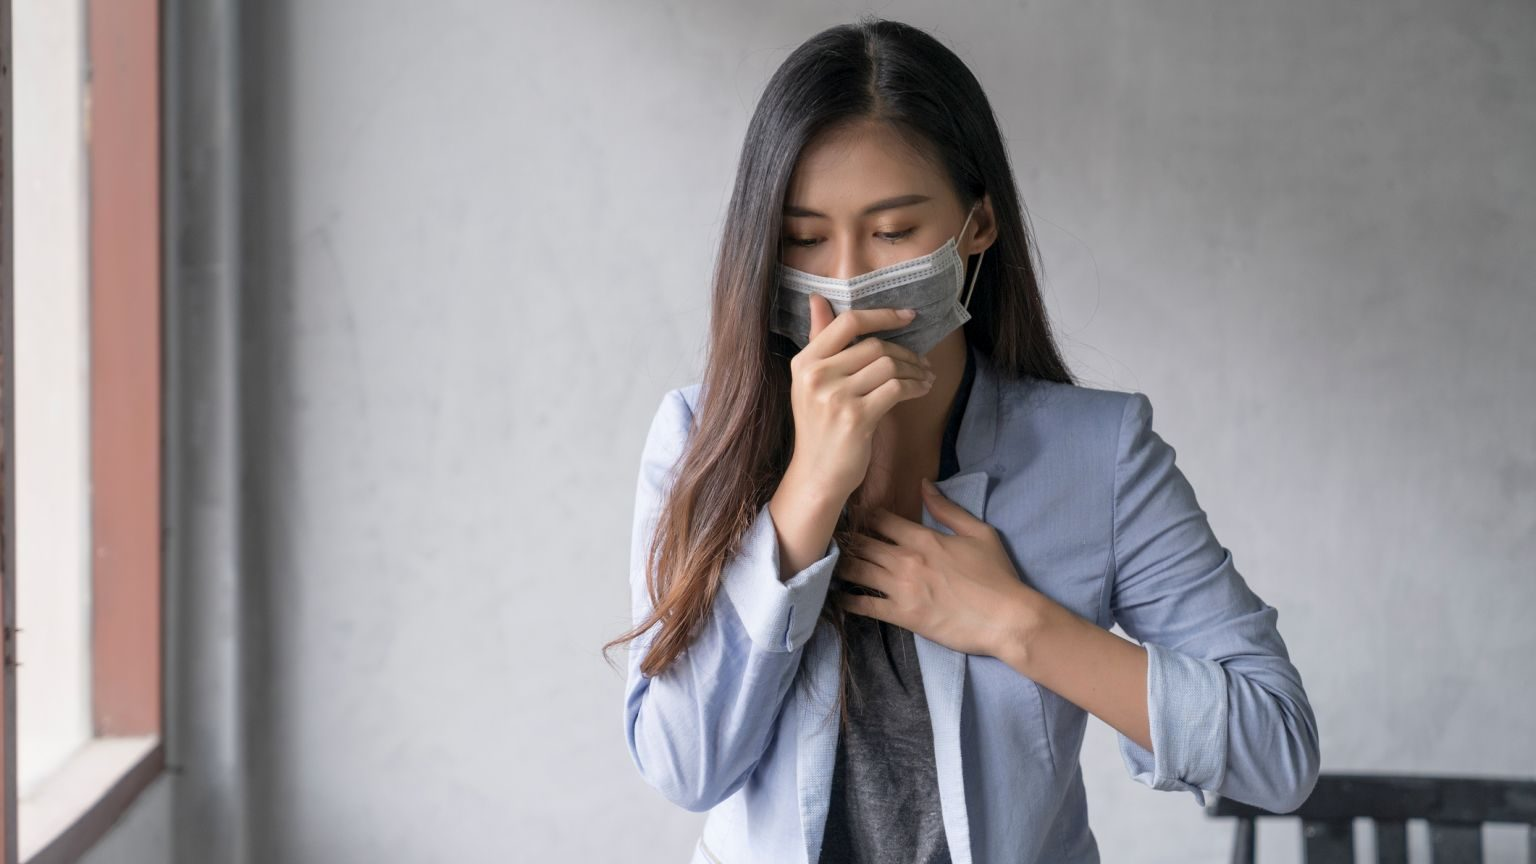 Business woman wearing face mask and cough influenza while working in office